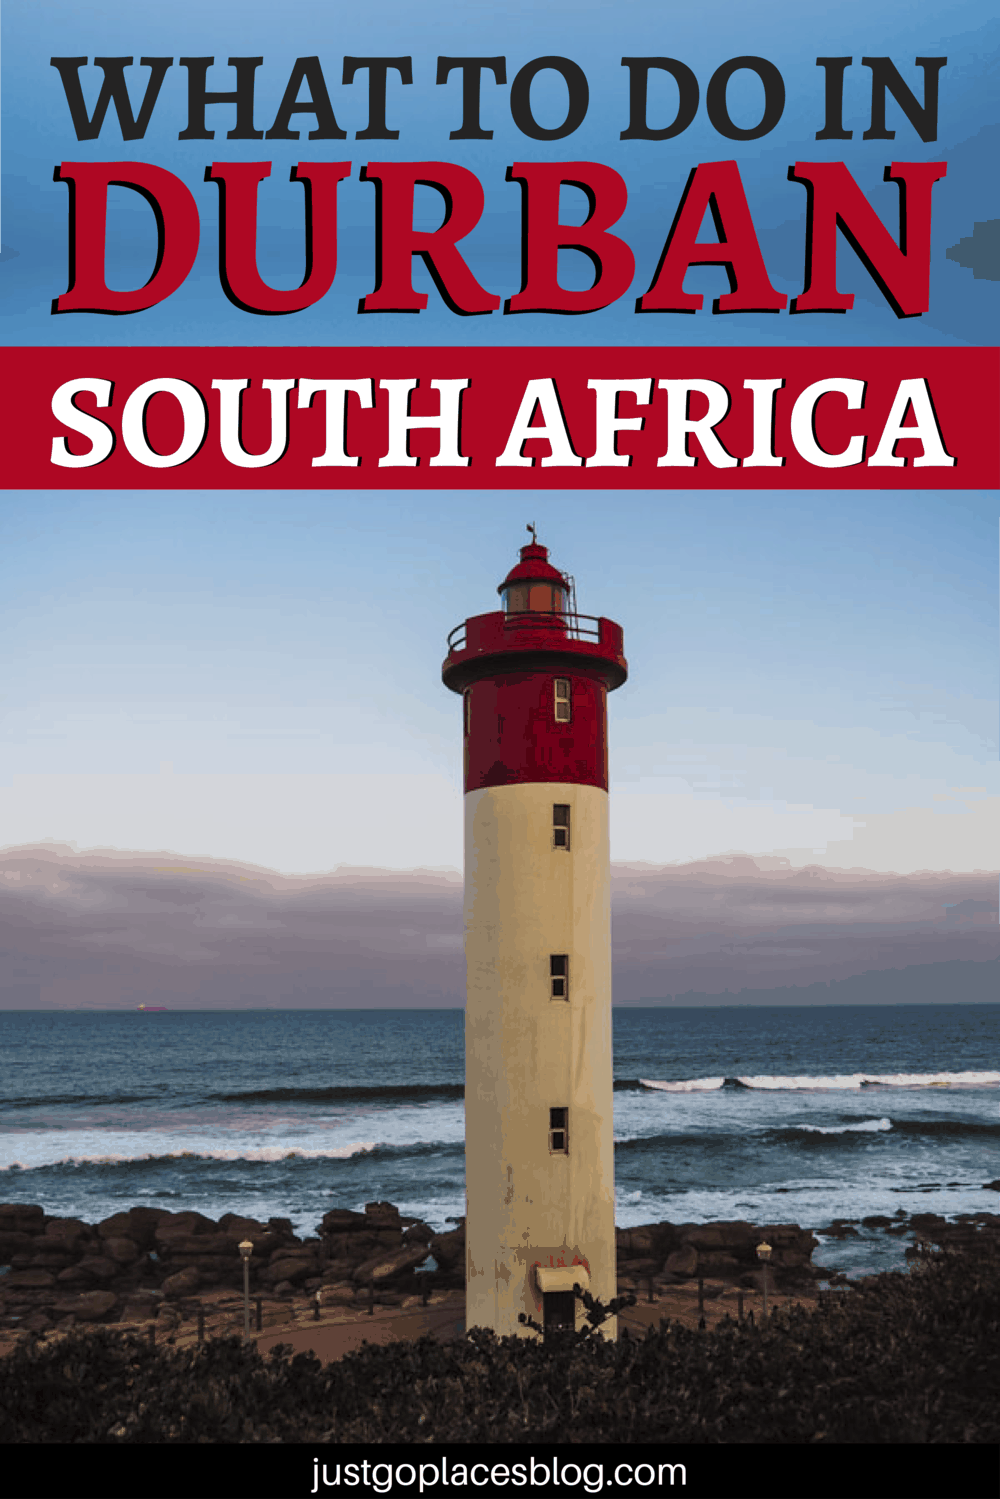 What to do in durban south Africa